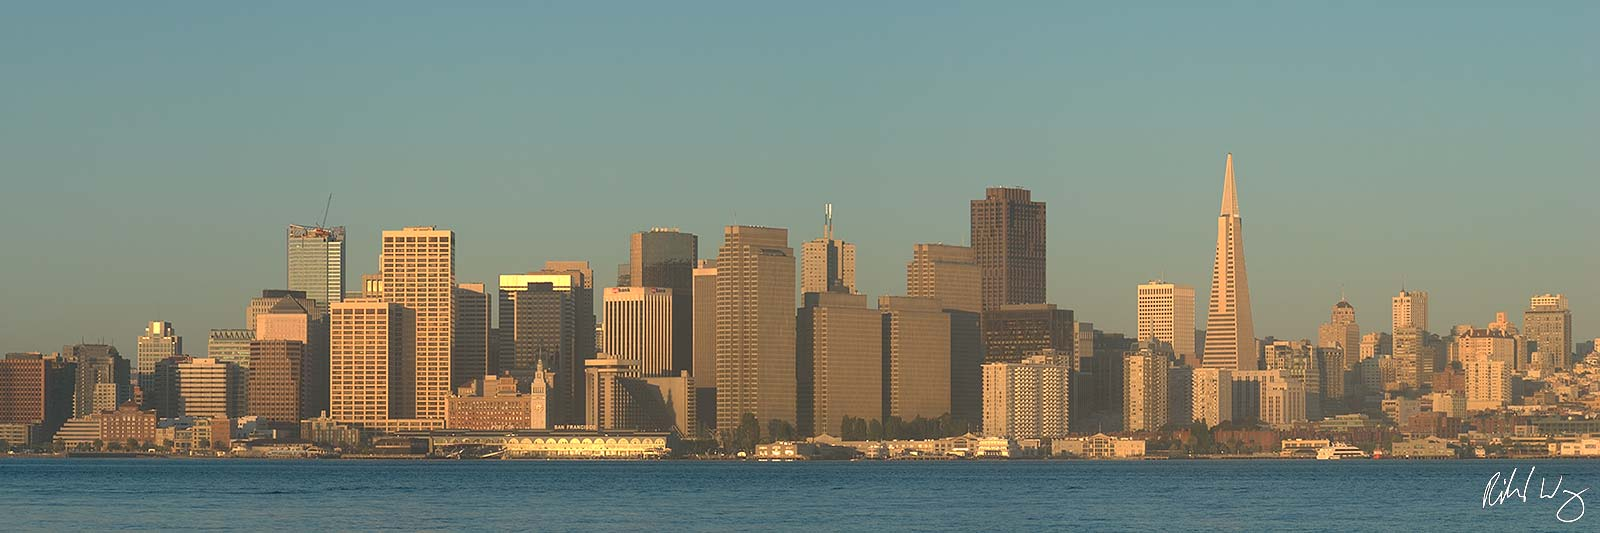 Downtown San Francisco Panoramic, Treasure Island, California Limited Edition of 10 Prints Arguably the tech capital of the world...